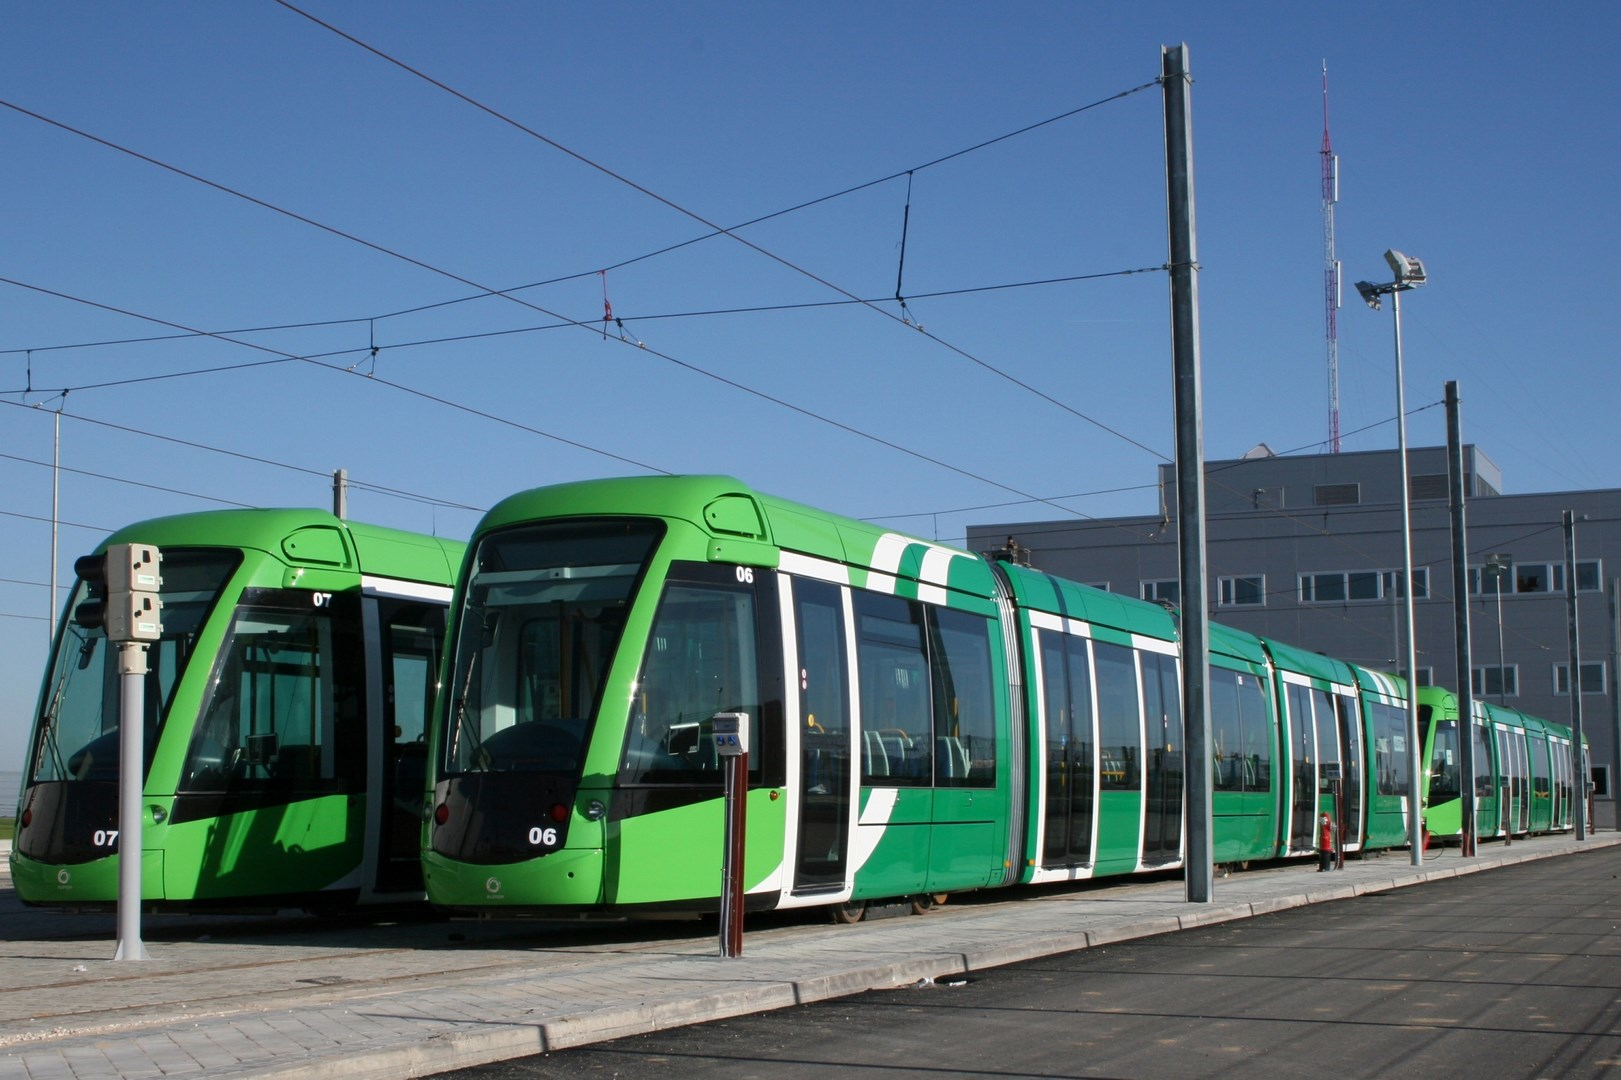 View of the tramcars circulating through Parla on the tracks